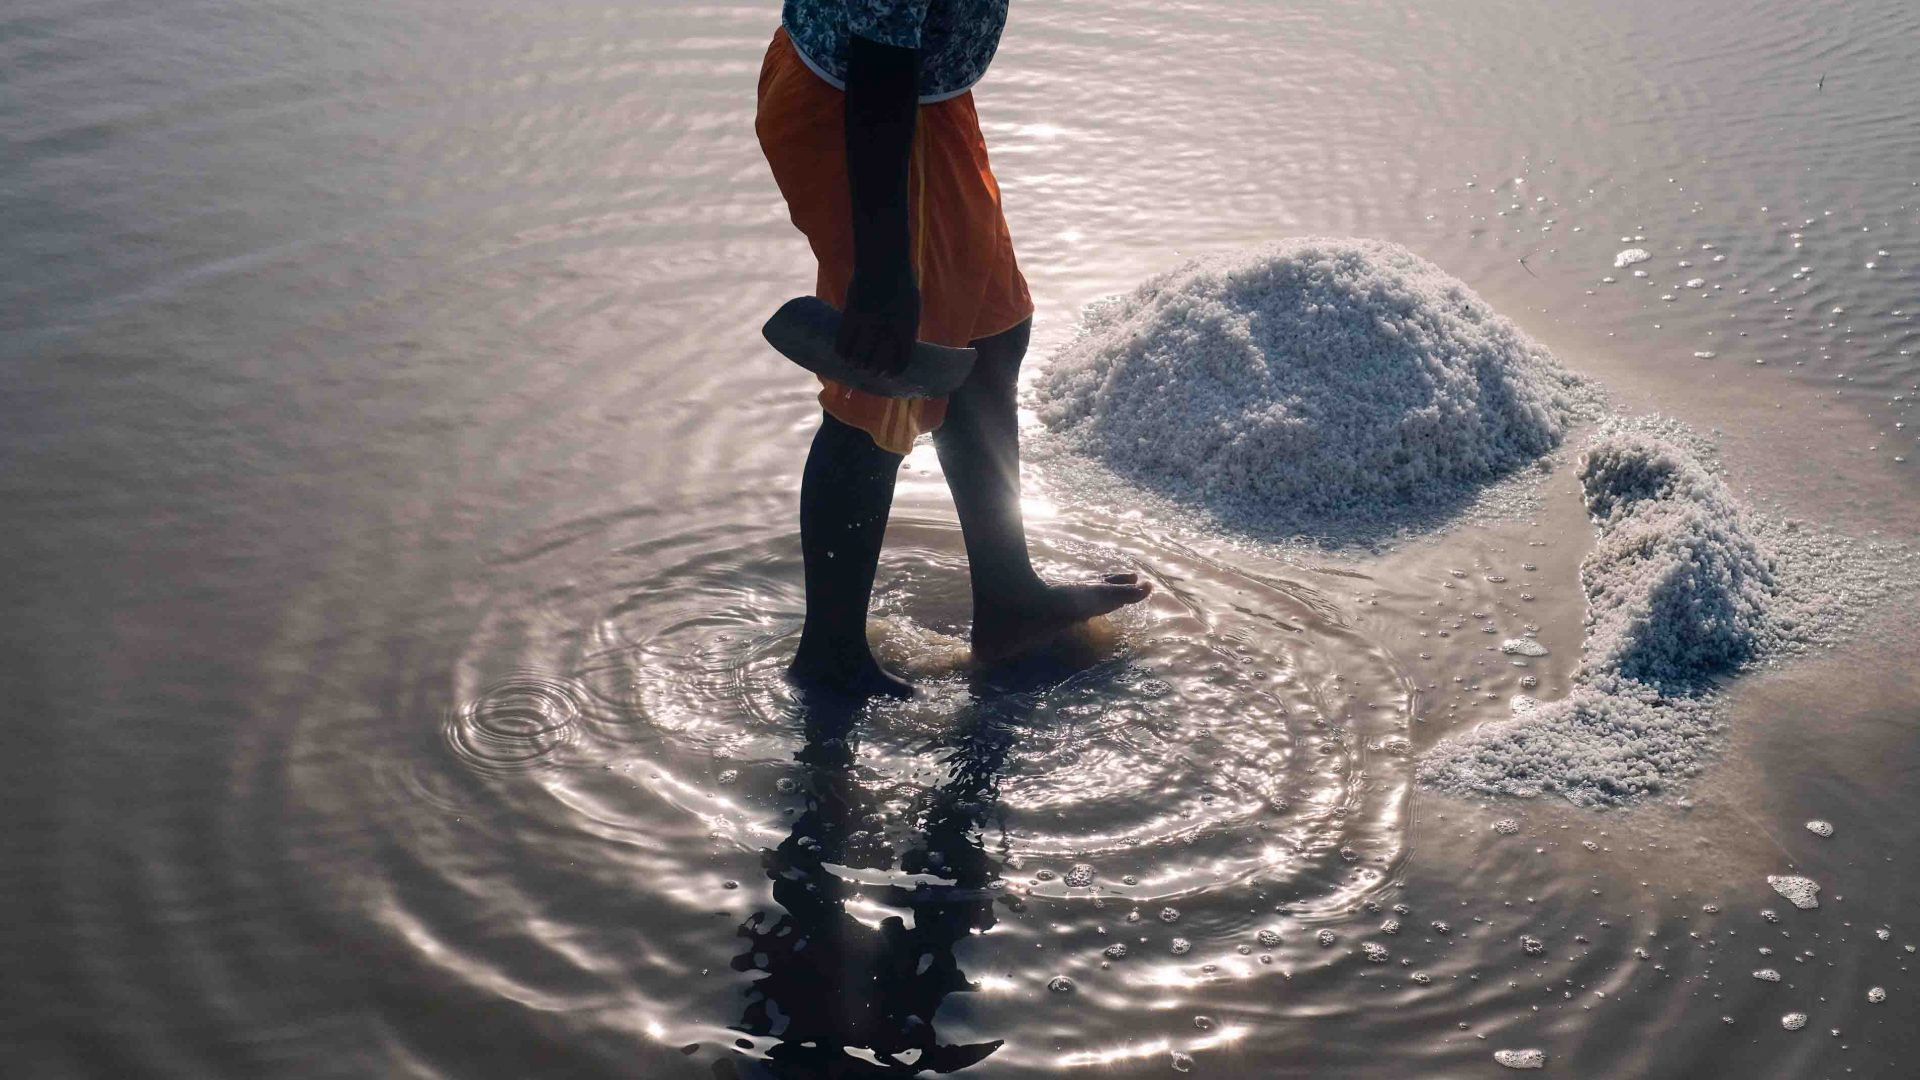 A woman standing in the middle of a salt field in Songor lagoon, Eastern Ghana.